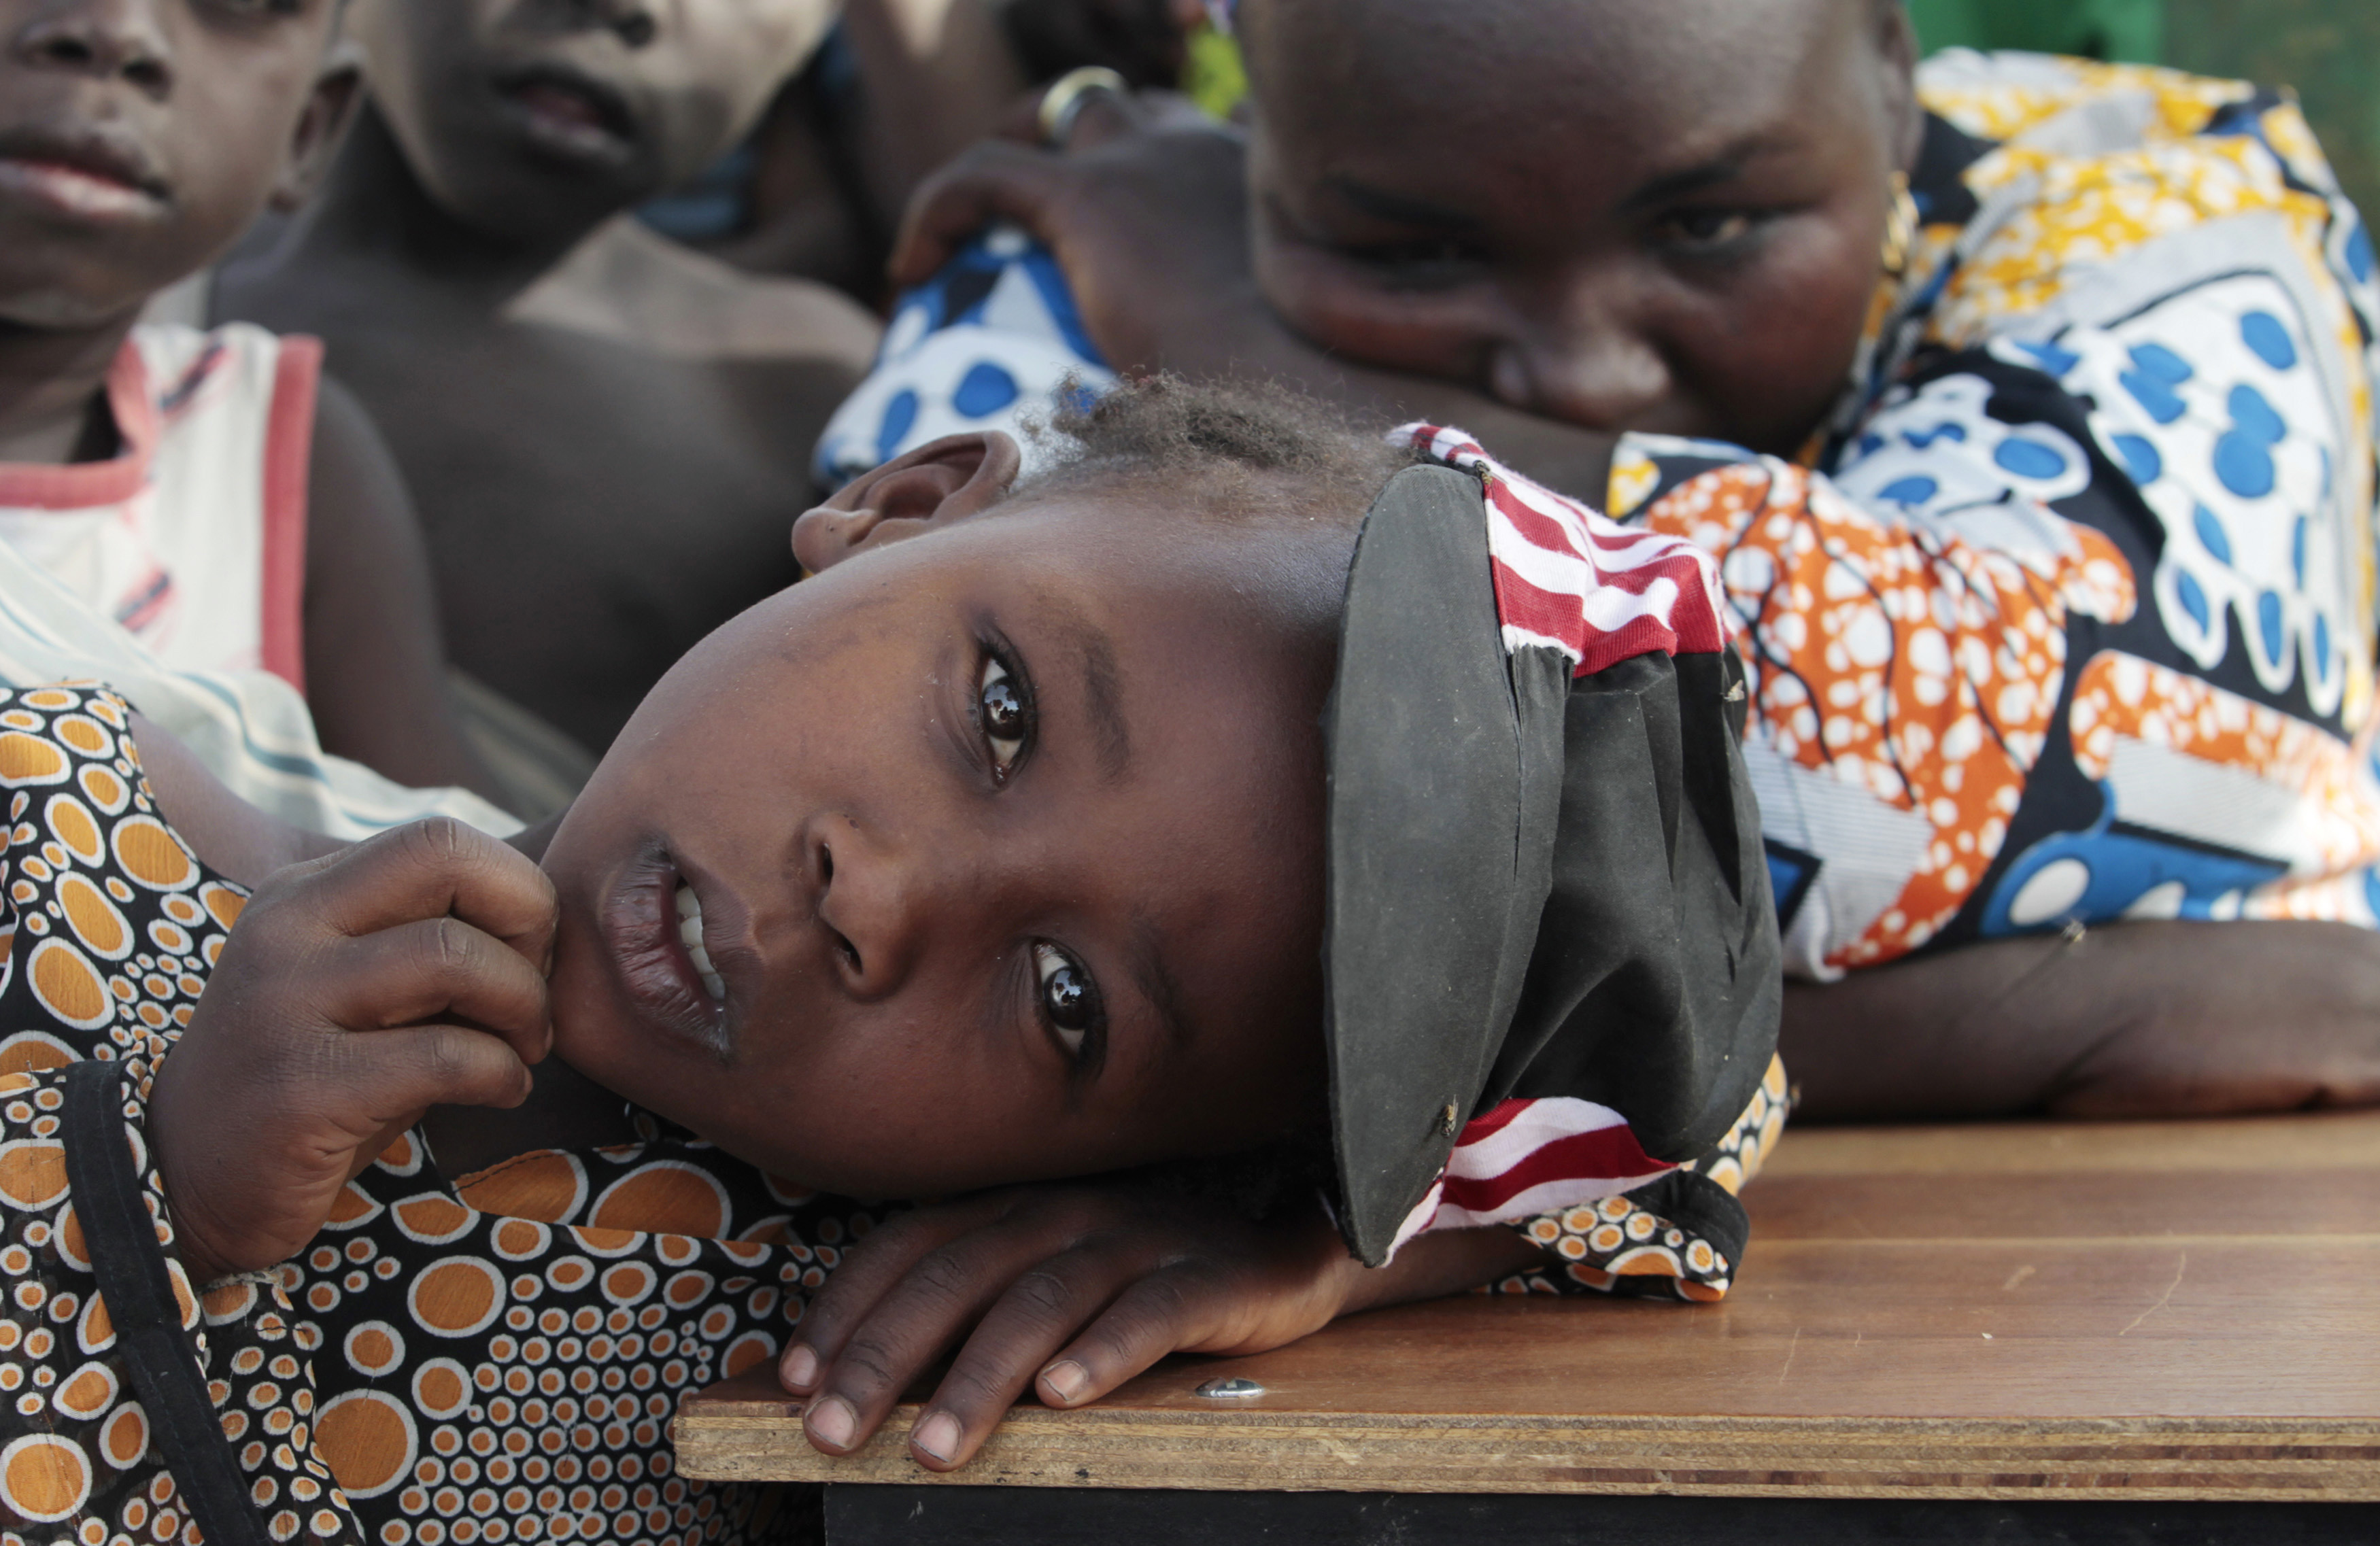 A girl displaced as a result of Boko Haram attack in the northeast region of Nigeria, rests her head on a desk at Maikohi secondary school camp for internally displaced persons (IDP) in Yola, Adamawa State January 13, 2015. Boko Haram says it is building an Islamic state that will revive the glory days of northern Nigeria's medieval Muslim empires, but for those in its territory life is a litany of killings, kidnappings, hunger and economic collapse. Picture taken January 13, 2015. To match Insight NIGERIA-BOKOHARAM/     REUTERS/Afolabi Sotunde (NIGERIA - Tags: CIVIL UNREST SOCIETY EDUCATION) - GM1EB1K0WBG01